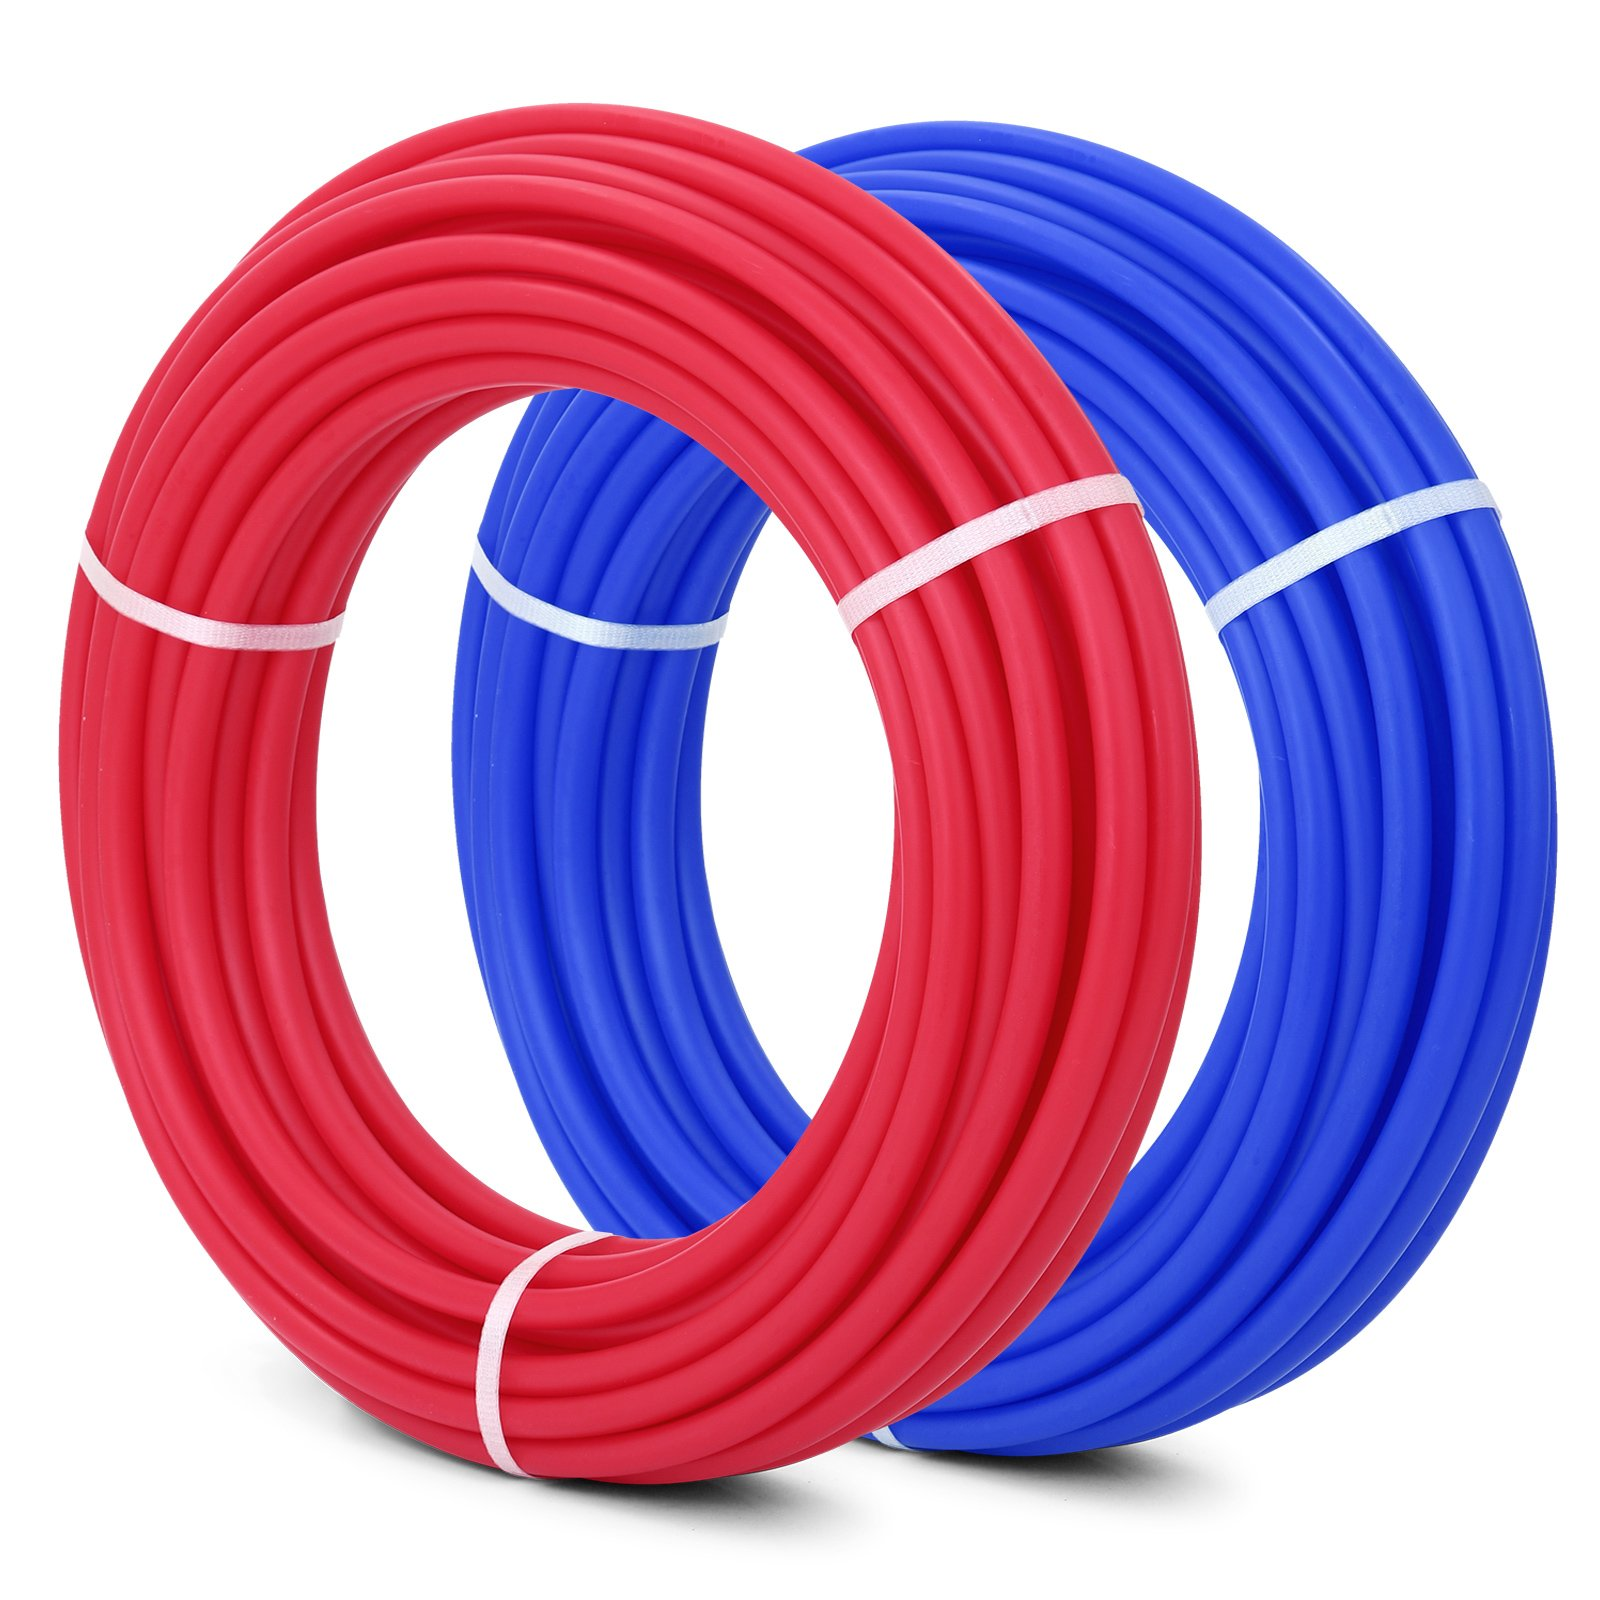 Happybuy PEX Pipe 2 Rolls of 1/2 Inch X 100 Feet Flexible Water Pipe Tubing Potable Water Pex Tubing by Happybuy